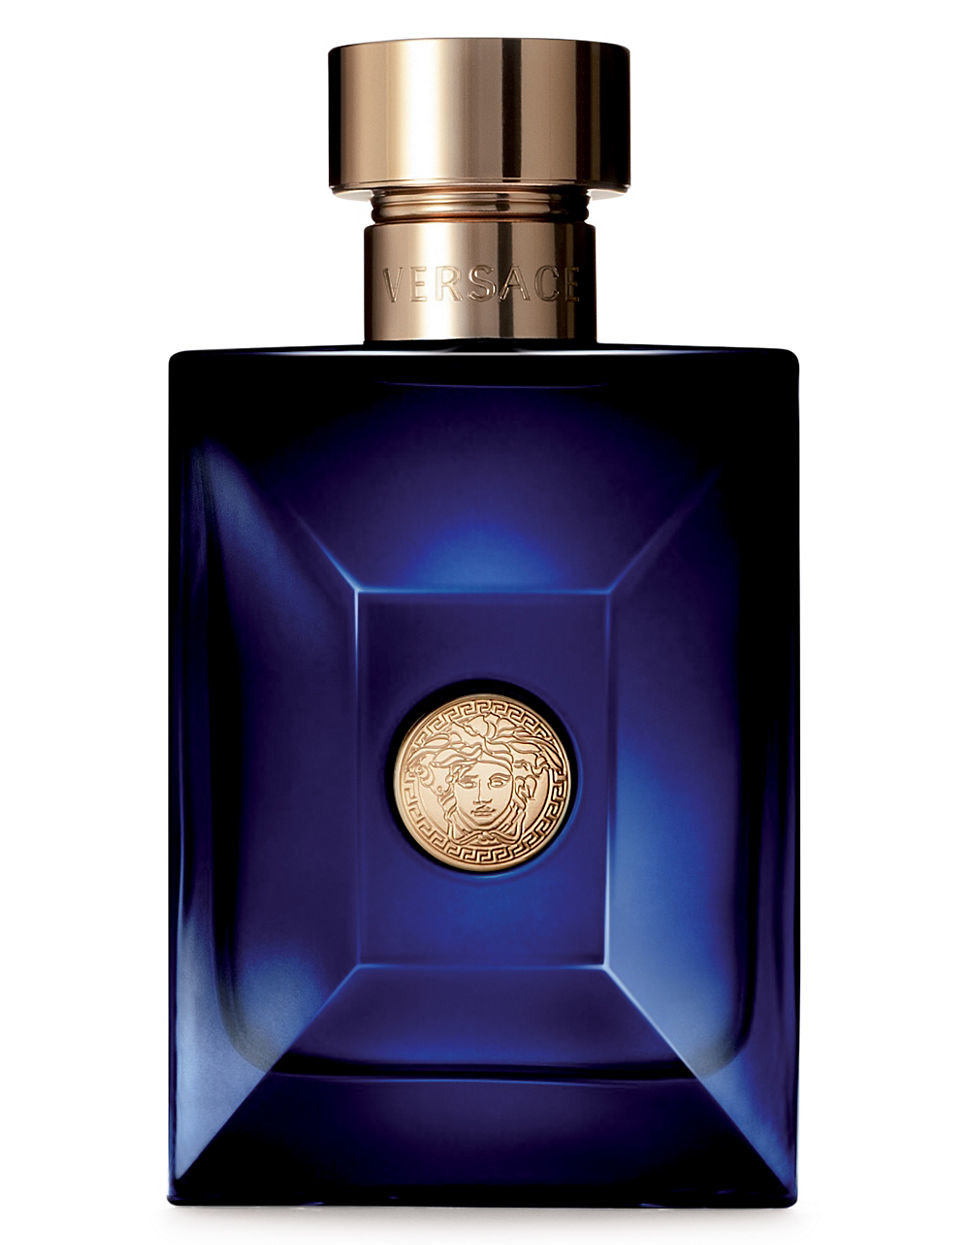 Tualetinis vanduo Versace Pour Homme Dylan Blue EDT vyrams 100 ml